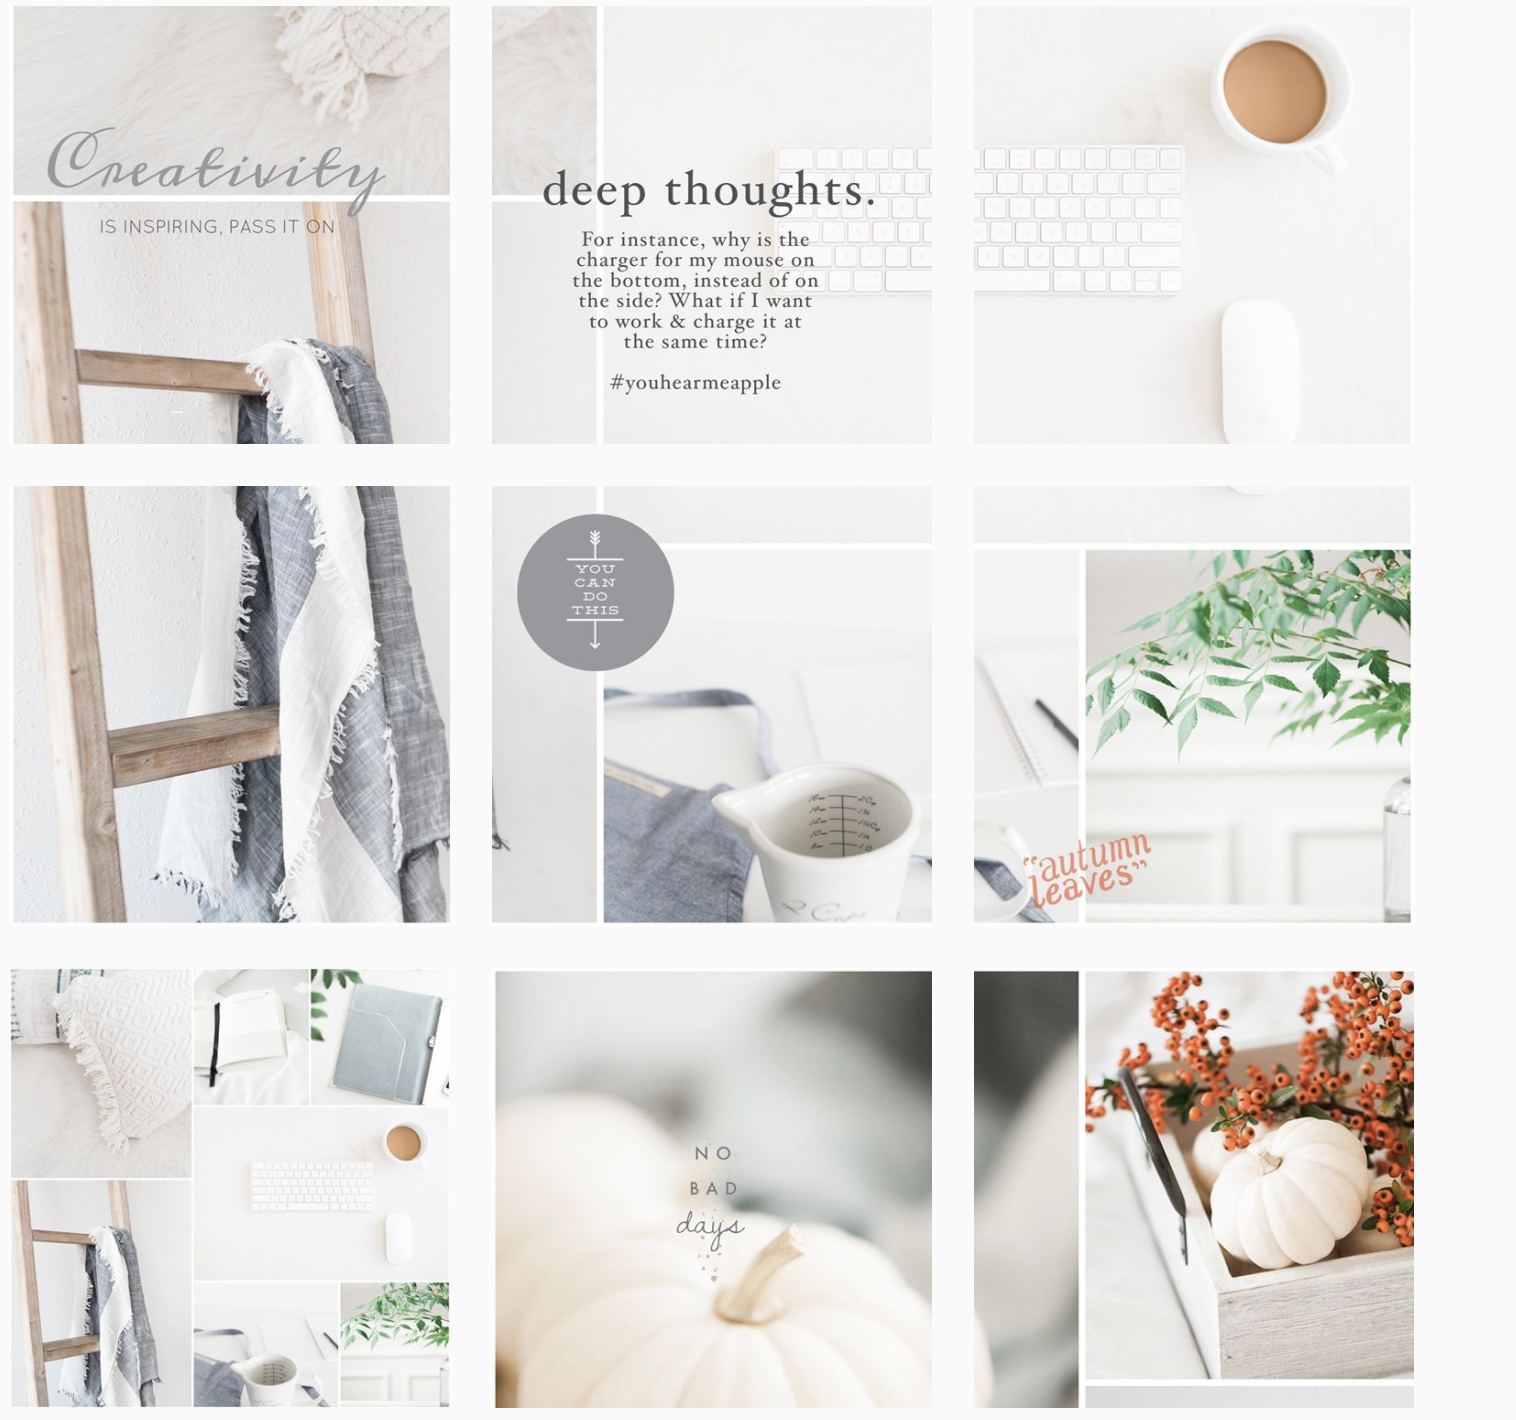 9 Brilliant Instagram Feed Ideas That Can Make Your